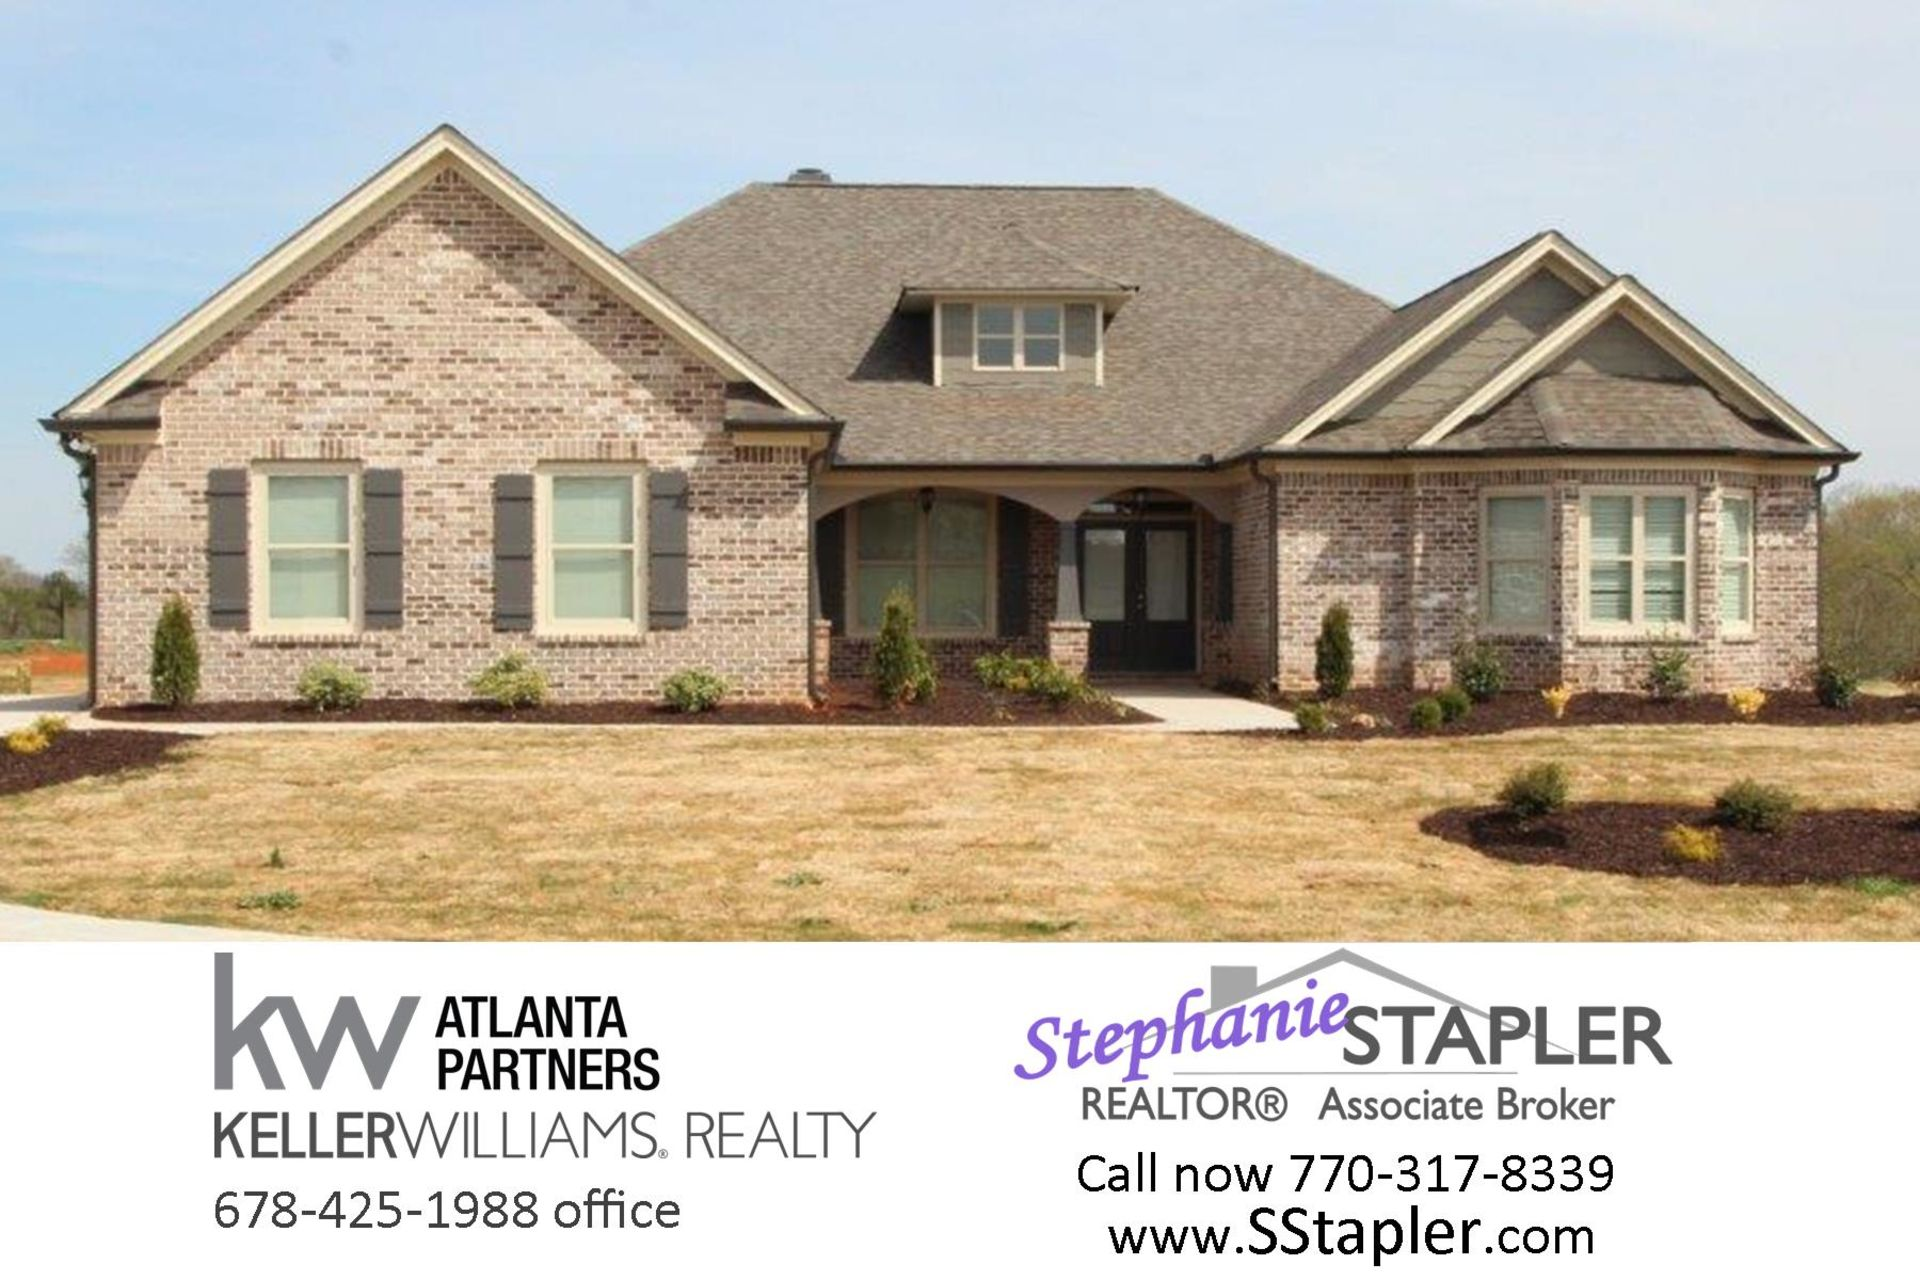 NEW HOME FOR SALE Grayson GA, Art N Homes 4bd/3ba, 2nd Owner's Suite, No HOA